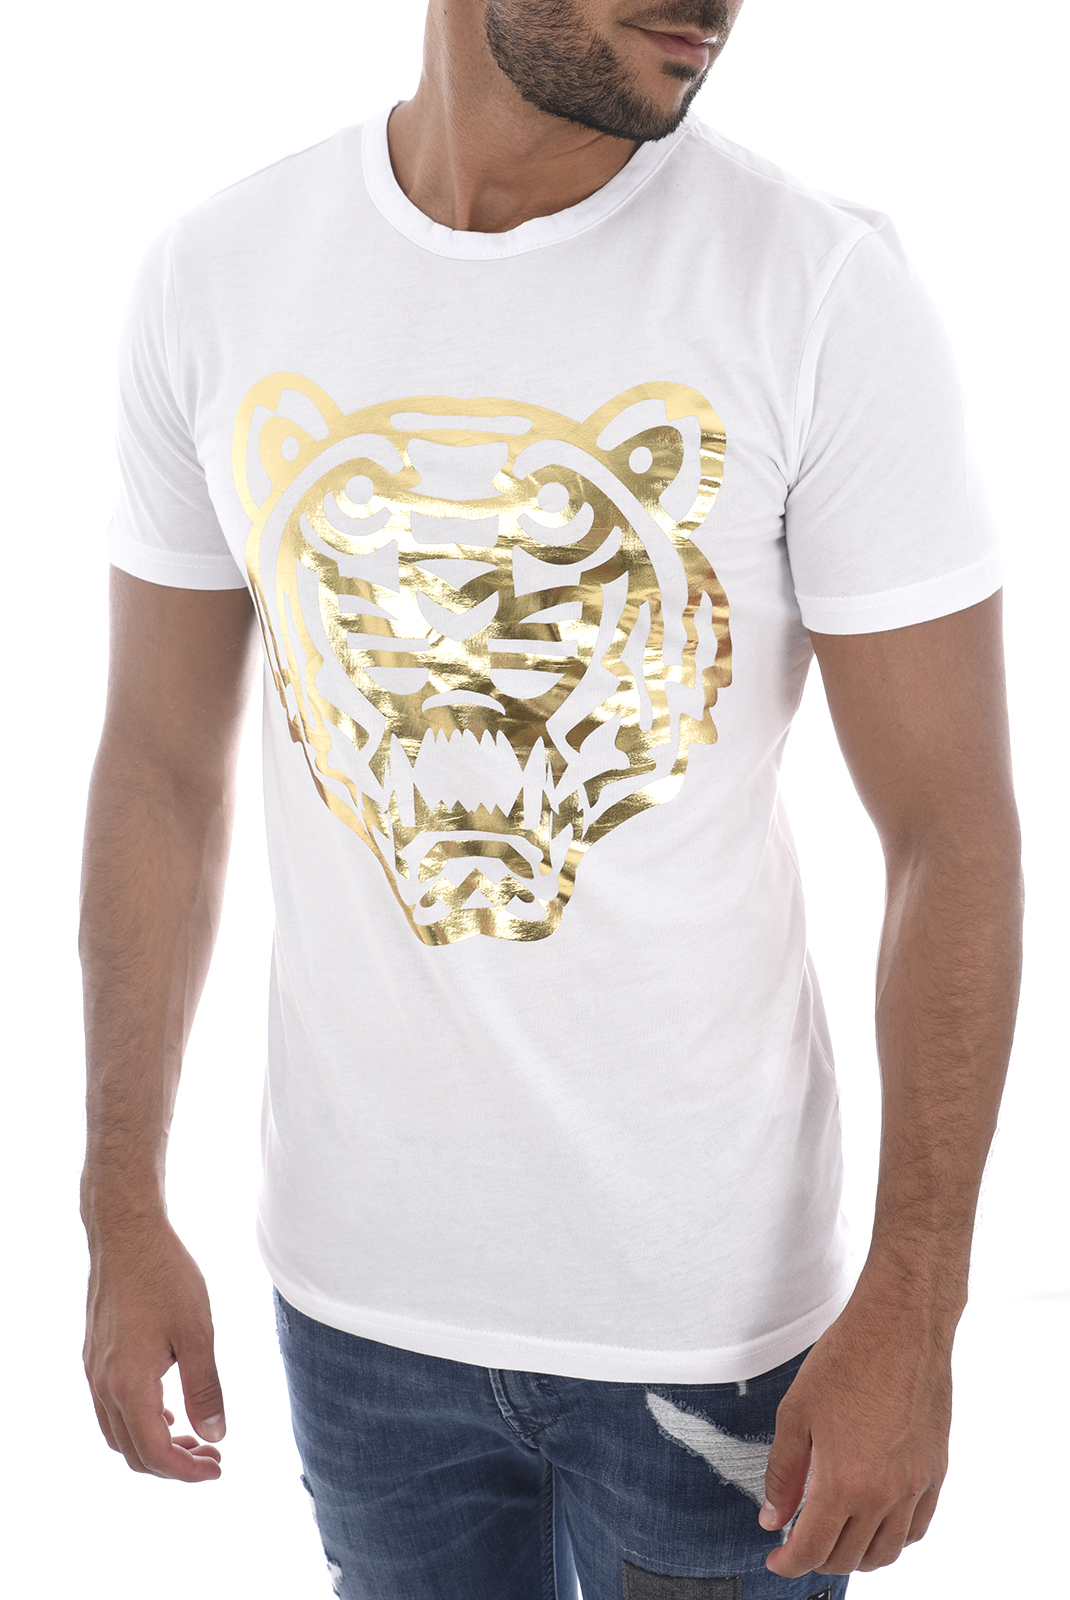 T-S manches courtes  Goldenim paris 1457 TIGRE BLANC